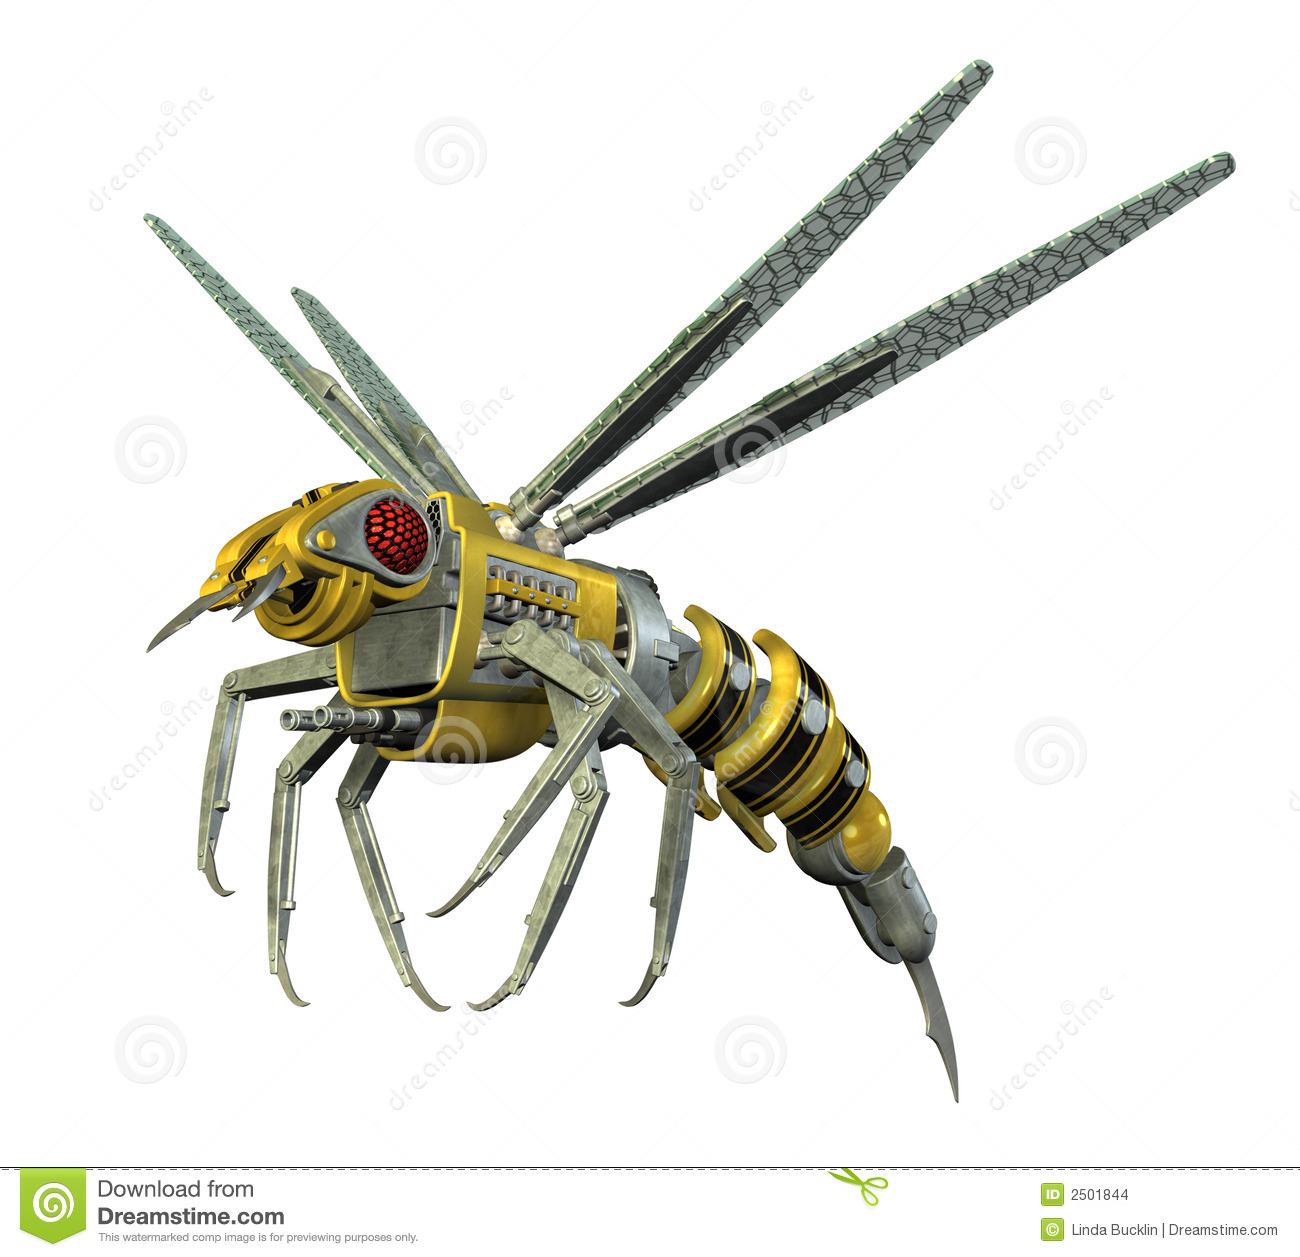 3D render depicting a robot wasp, isolated on white.